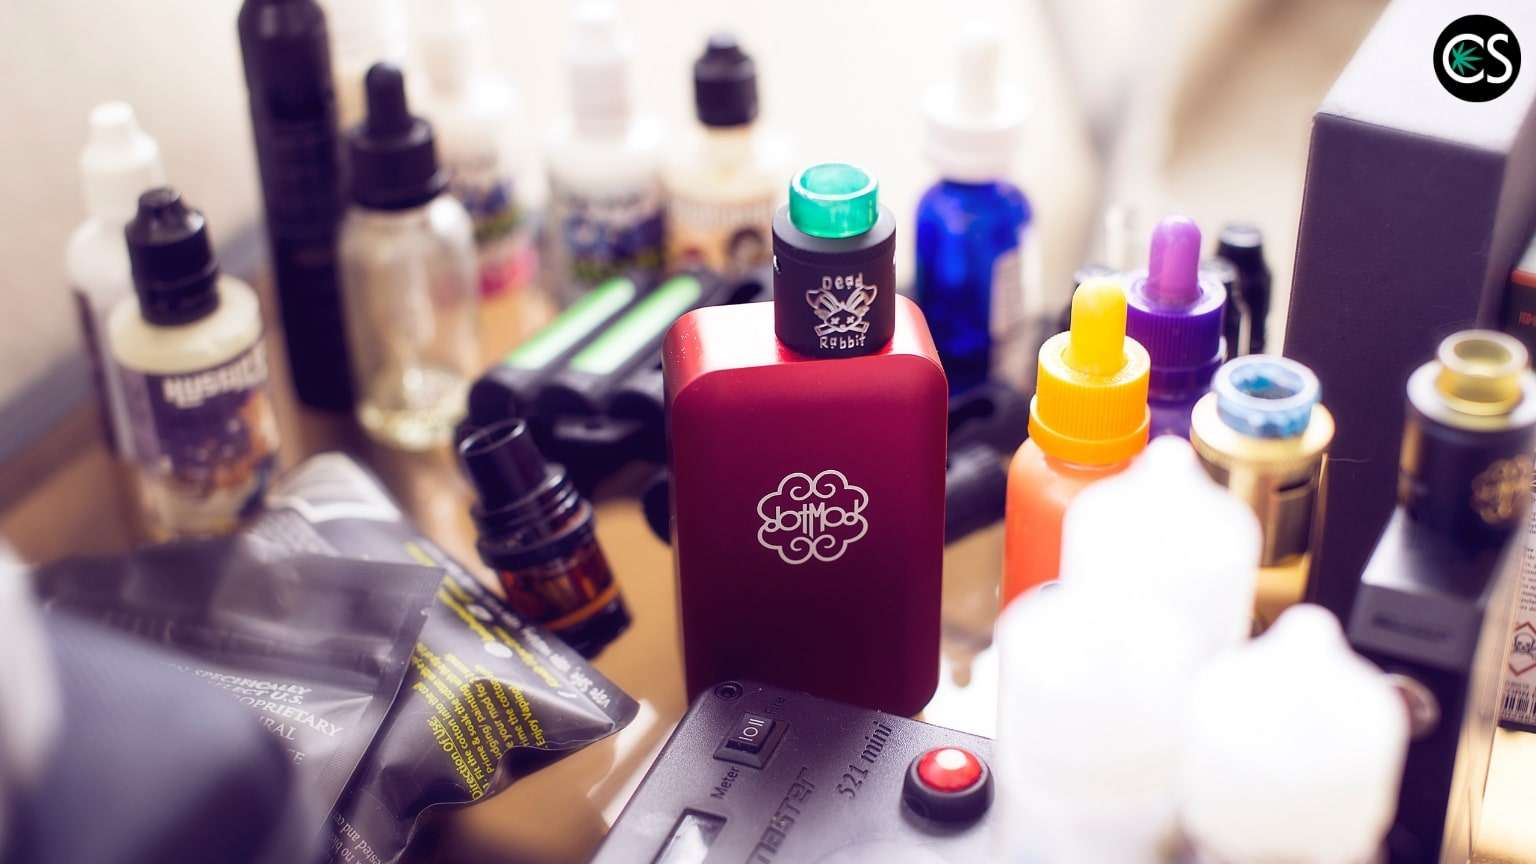 Vape Juice at Home without Nicotine